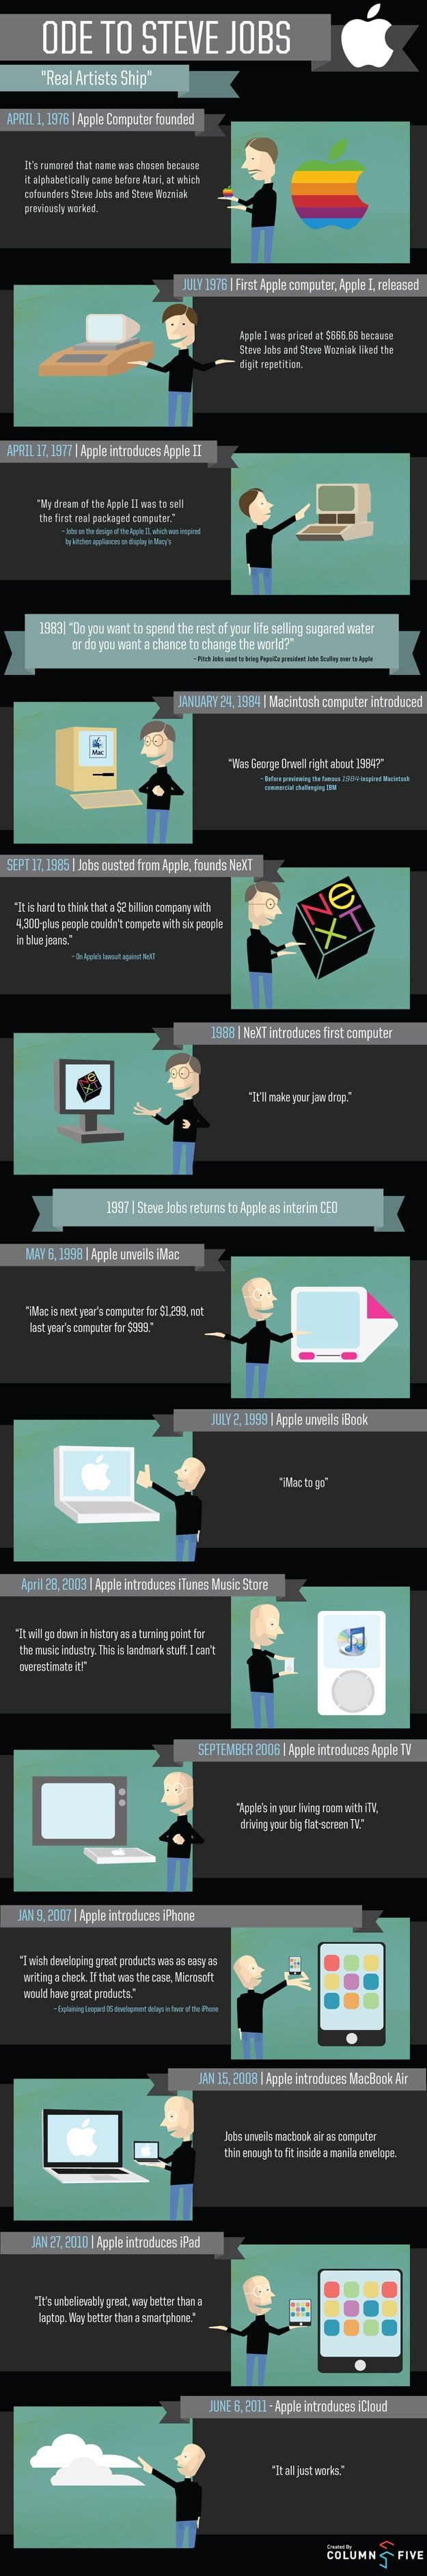 Memories Of Steve Jobs